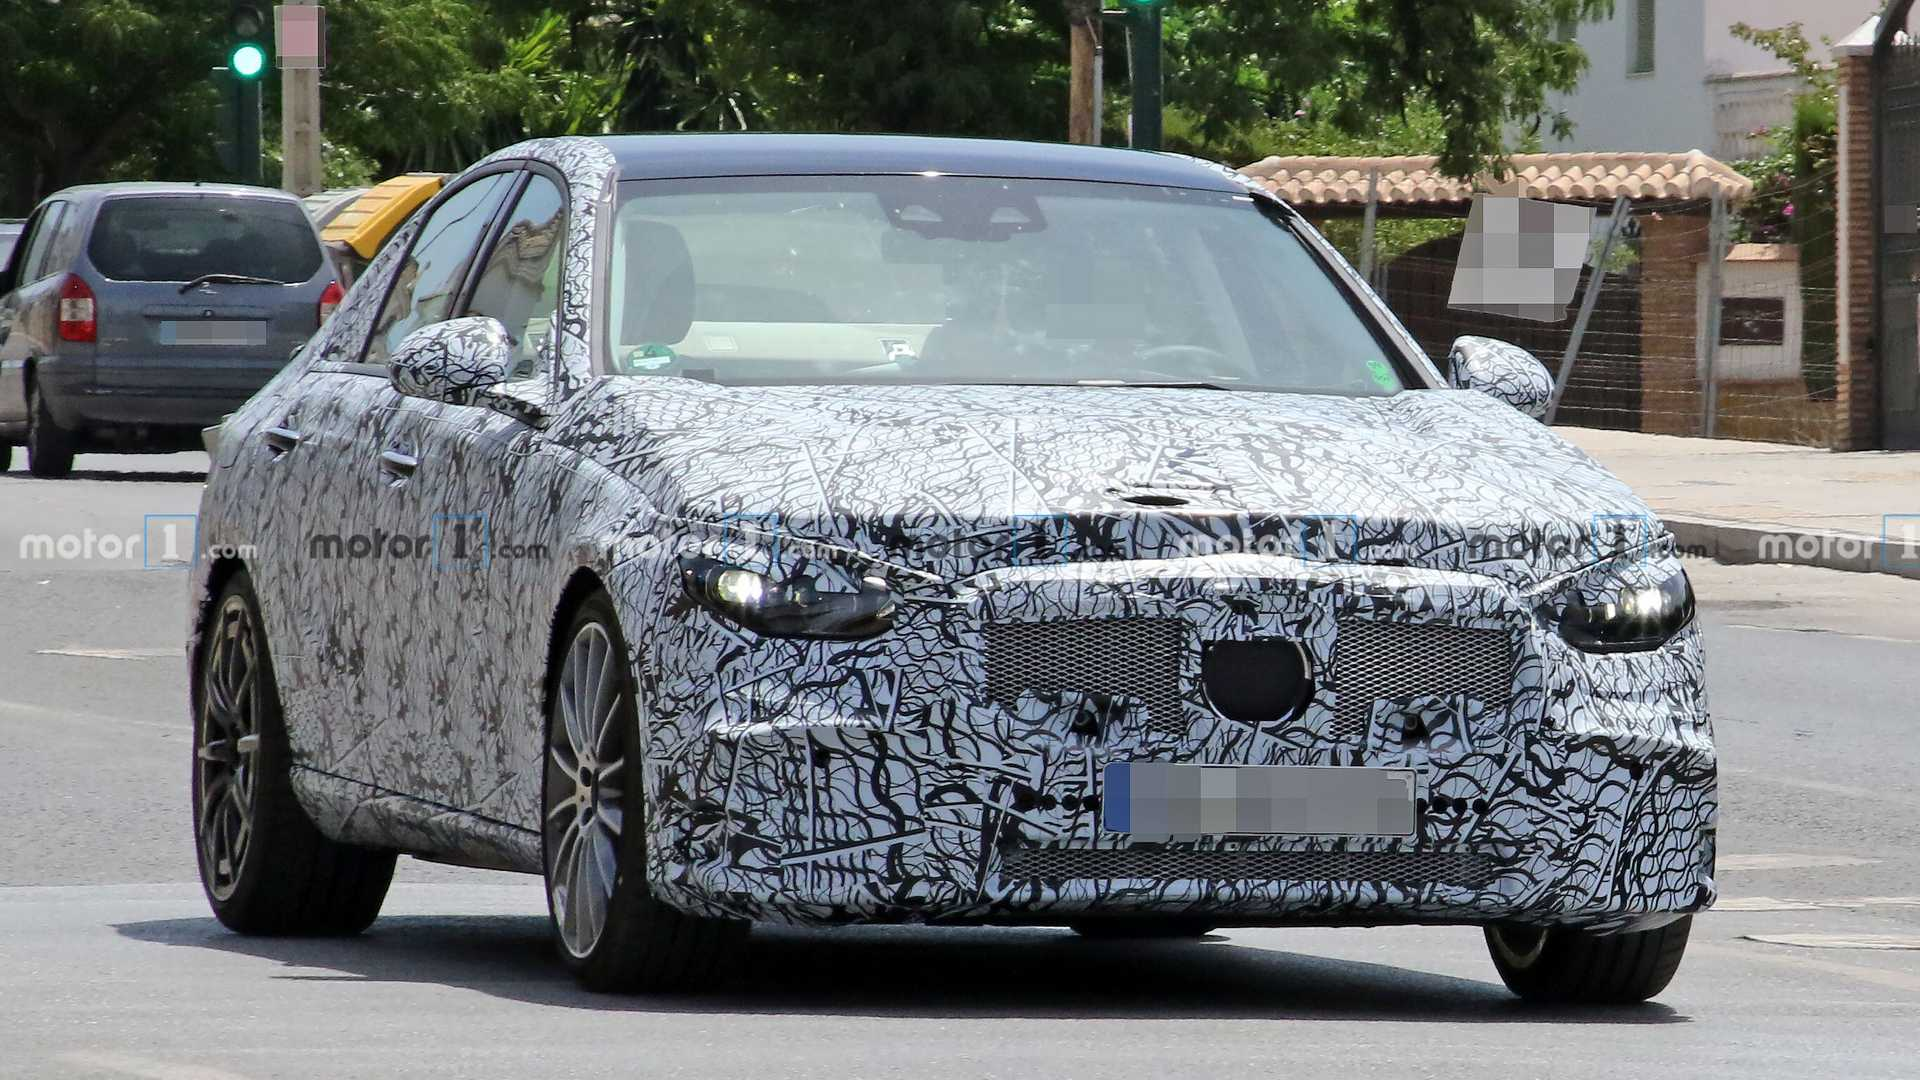 The Mercedes C-Class is due an update soon, and pre-production testing is well underway, as evidenced by these spy shots.